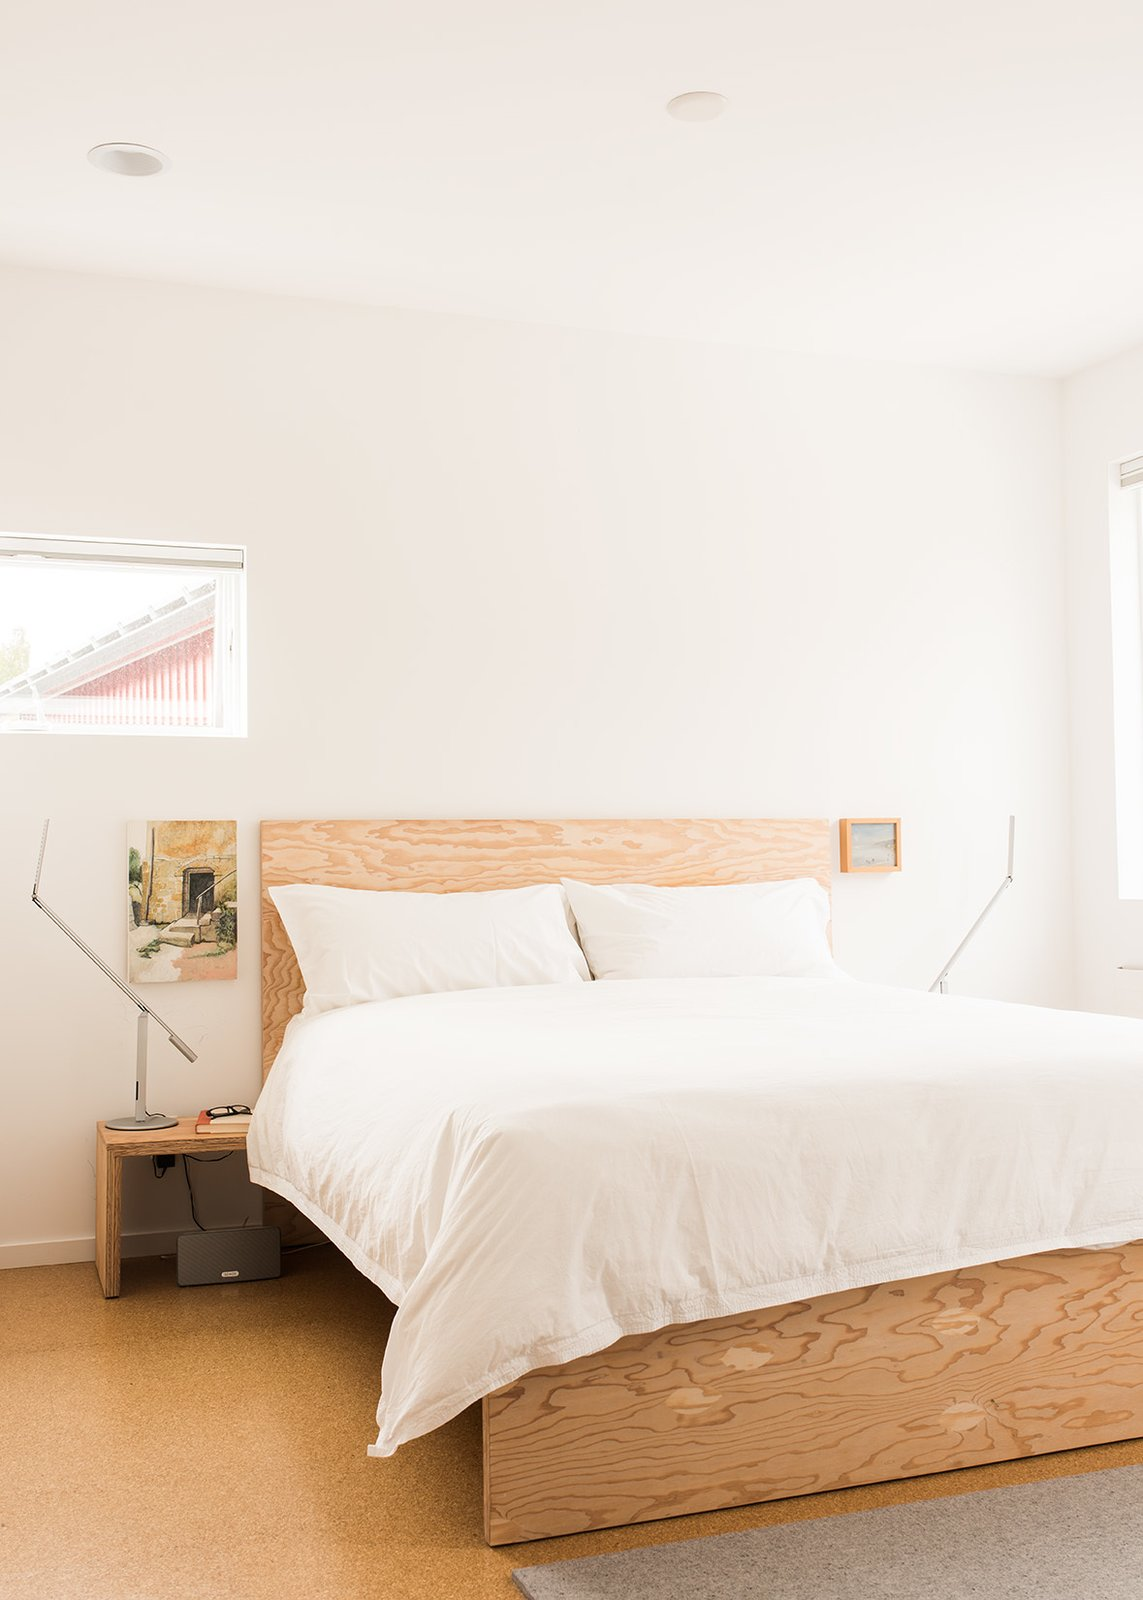 Davis used the same material to build furniture, including beds for his master bedroom. Tagged: Bedroom, Bed, Night Stands, Recessed Lighting, Light Hardwood Floor, Lamps, and Table Lighting.  Photo 7 of 15 in It Takes a Village